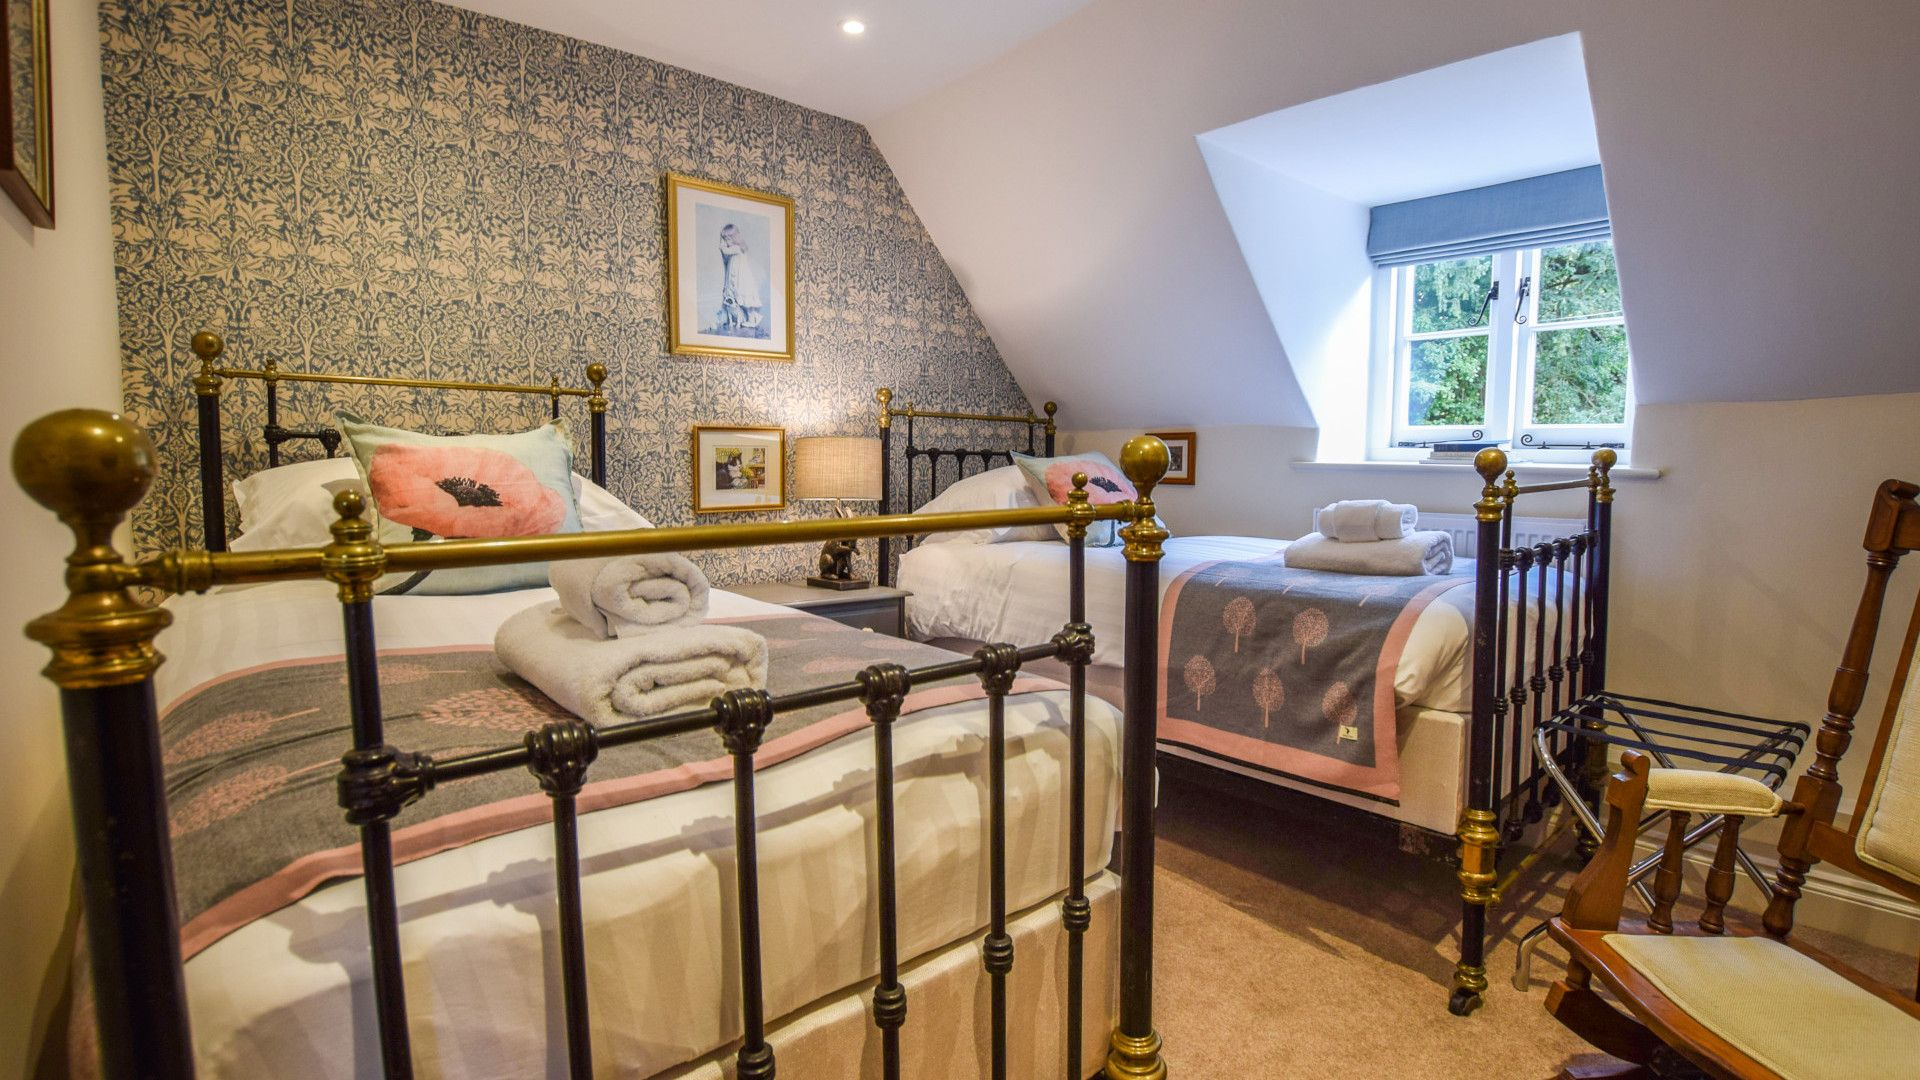 Bedroom 4, twin, Archers at Sudeley Castle, Bolthole Retreats